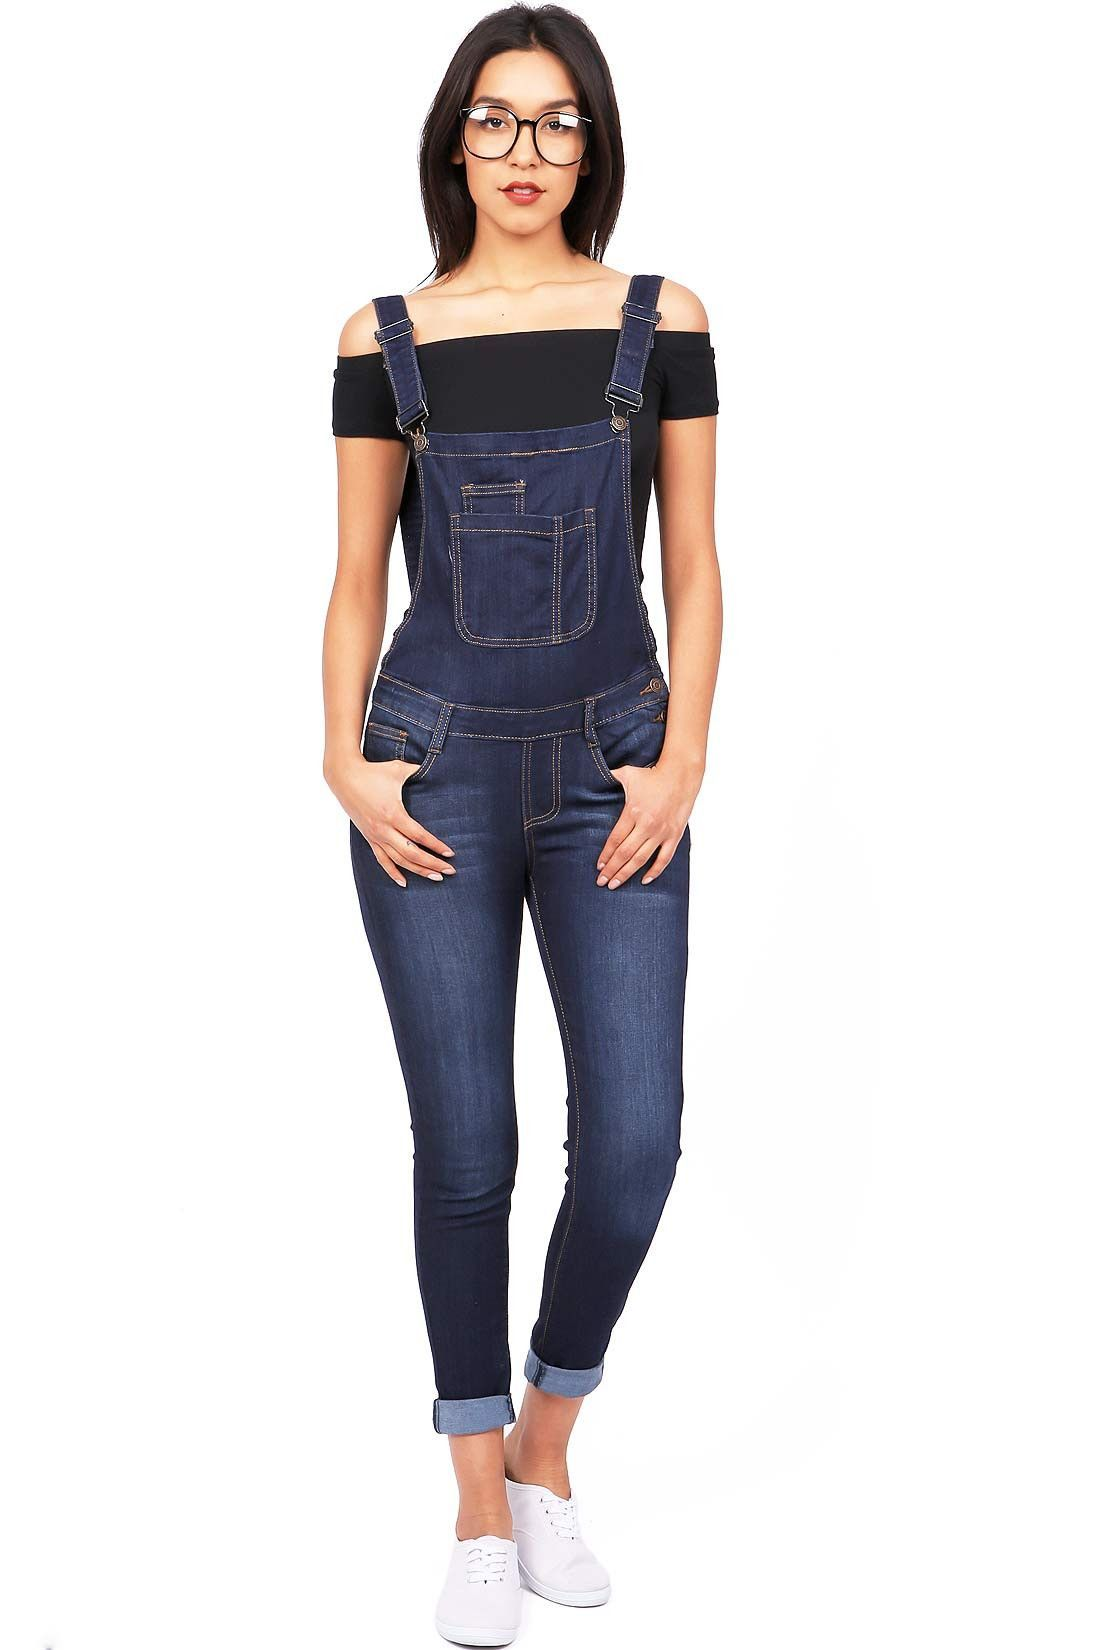 042b62cb5c2 Fitted overalls with traditional bib construction